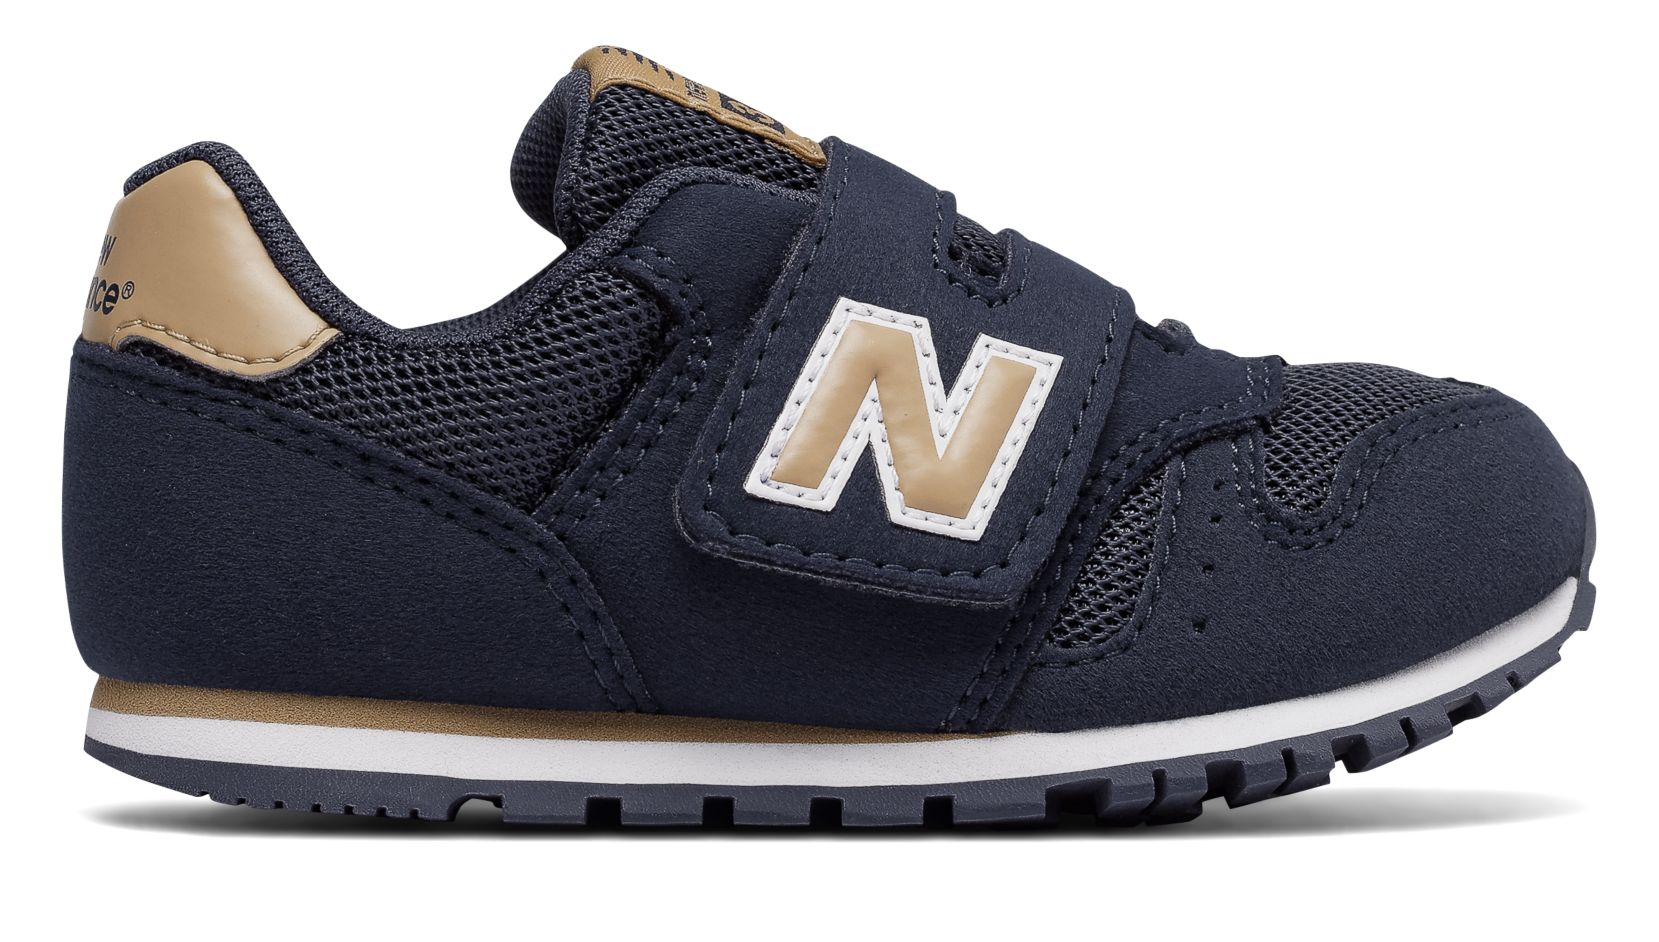 new balance 373 navy tan